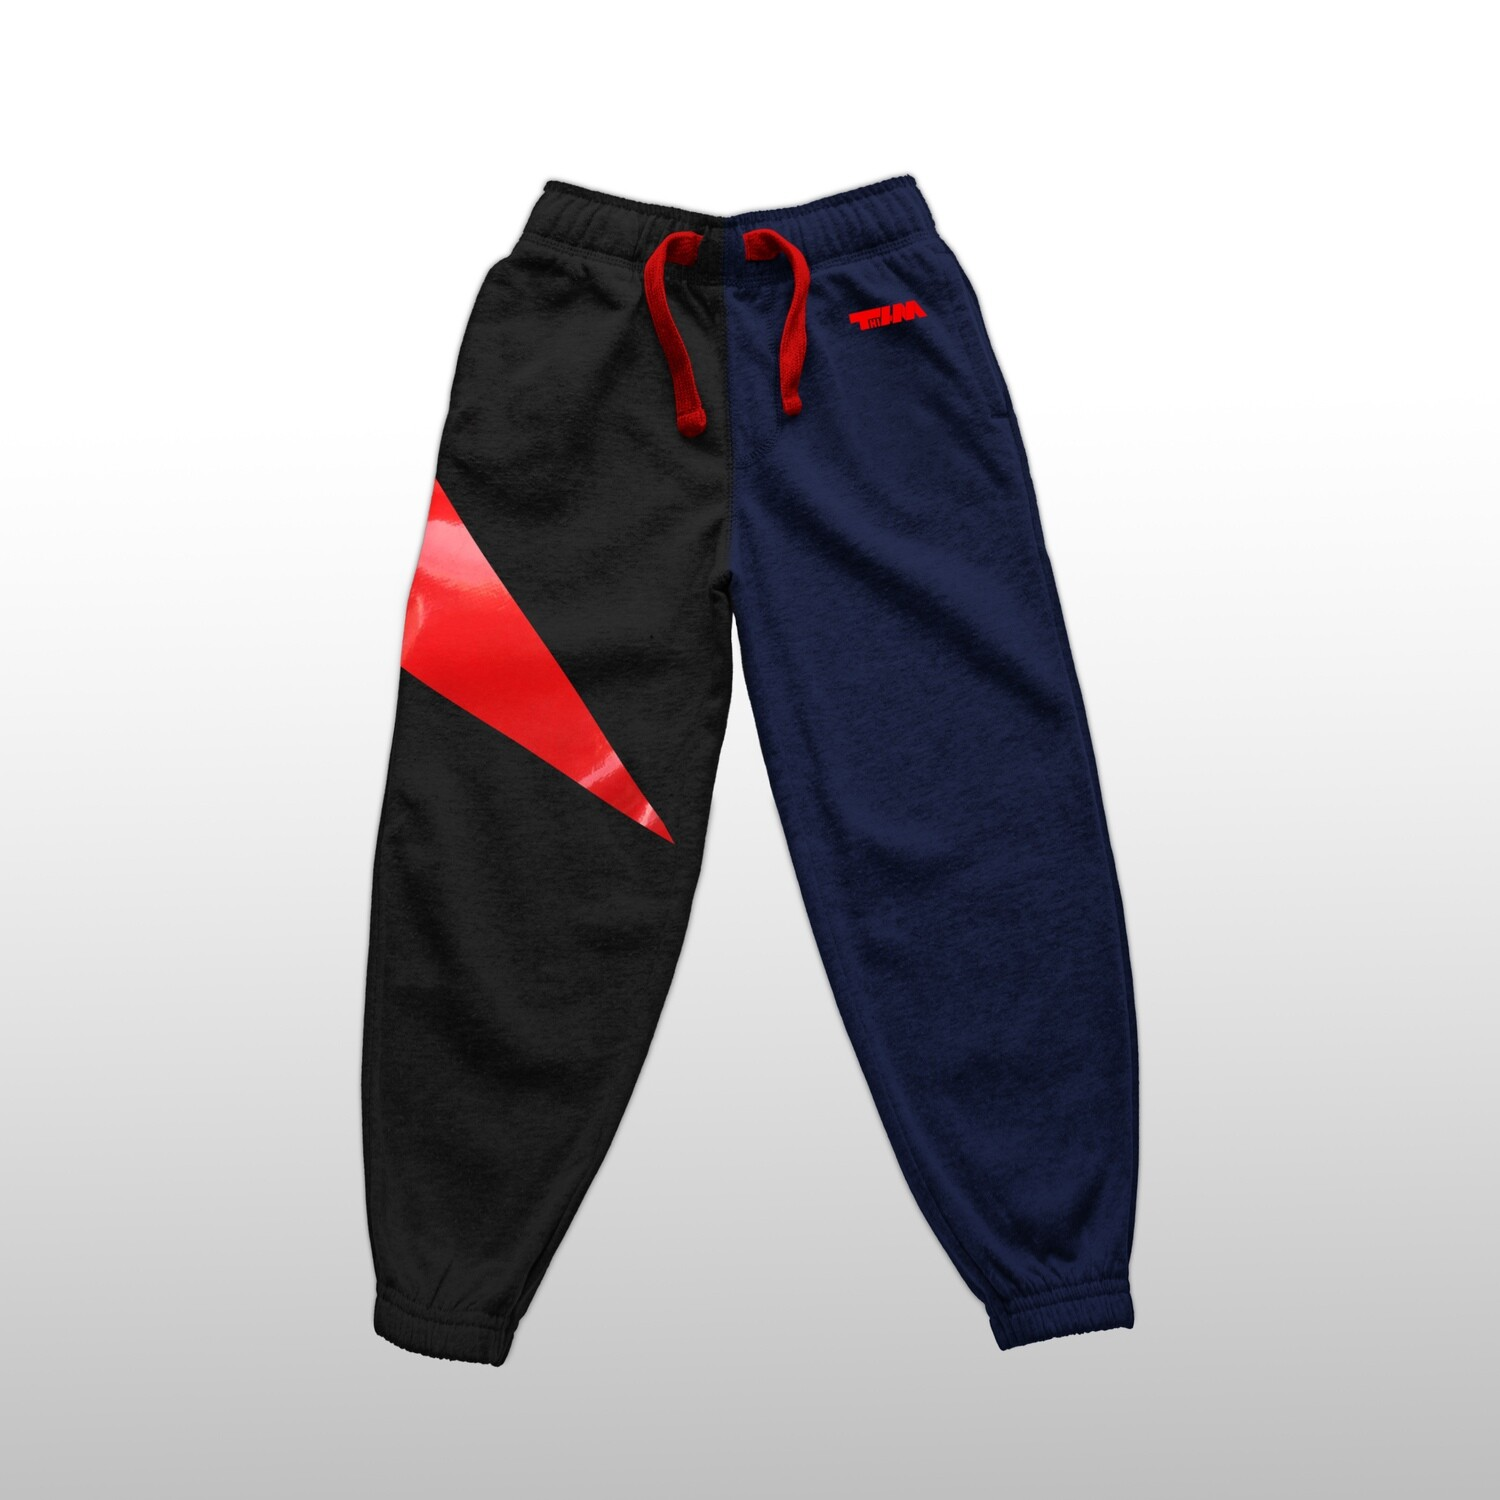 pants inspirated by Zacc style